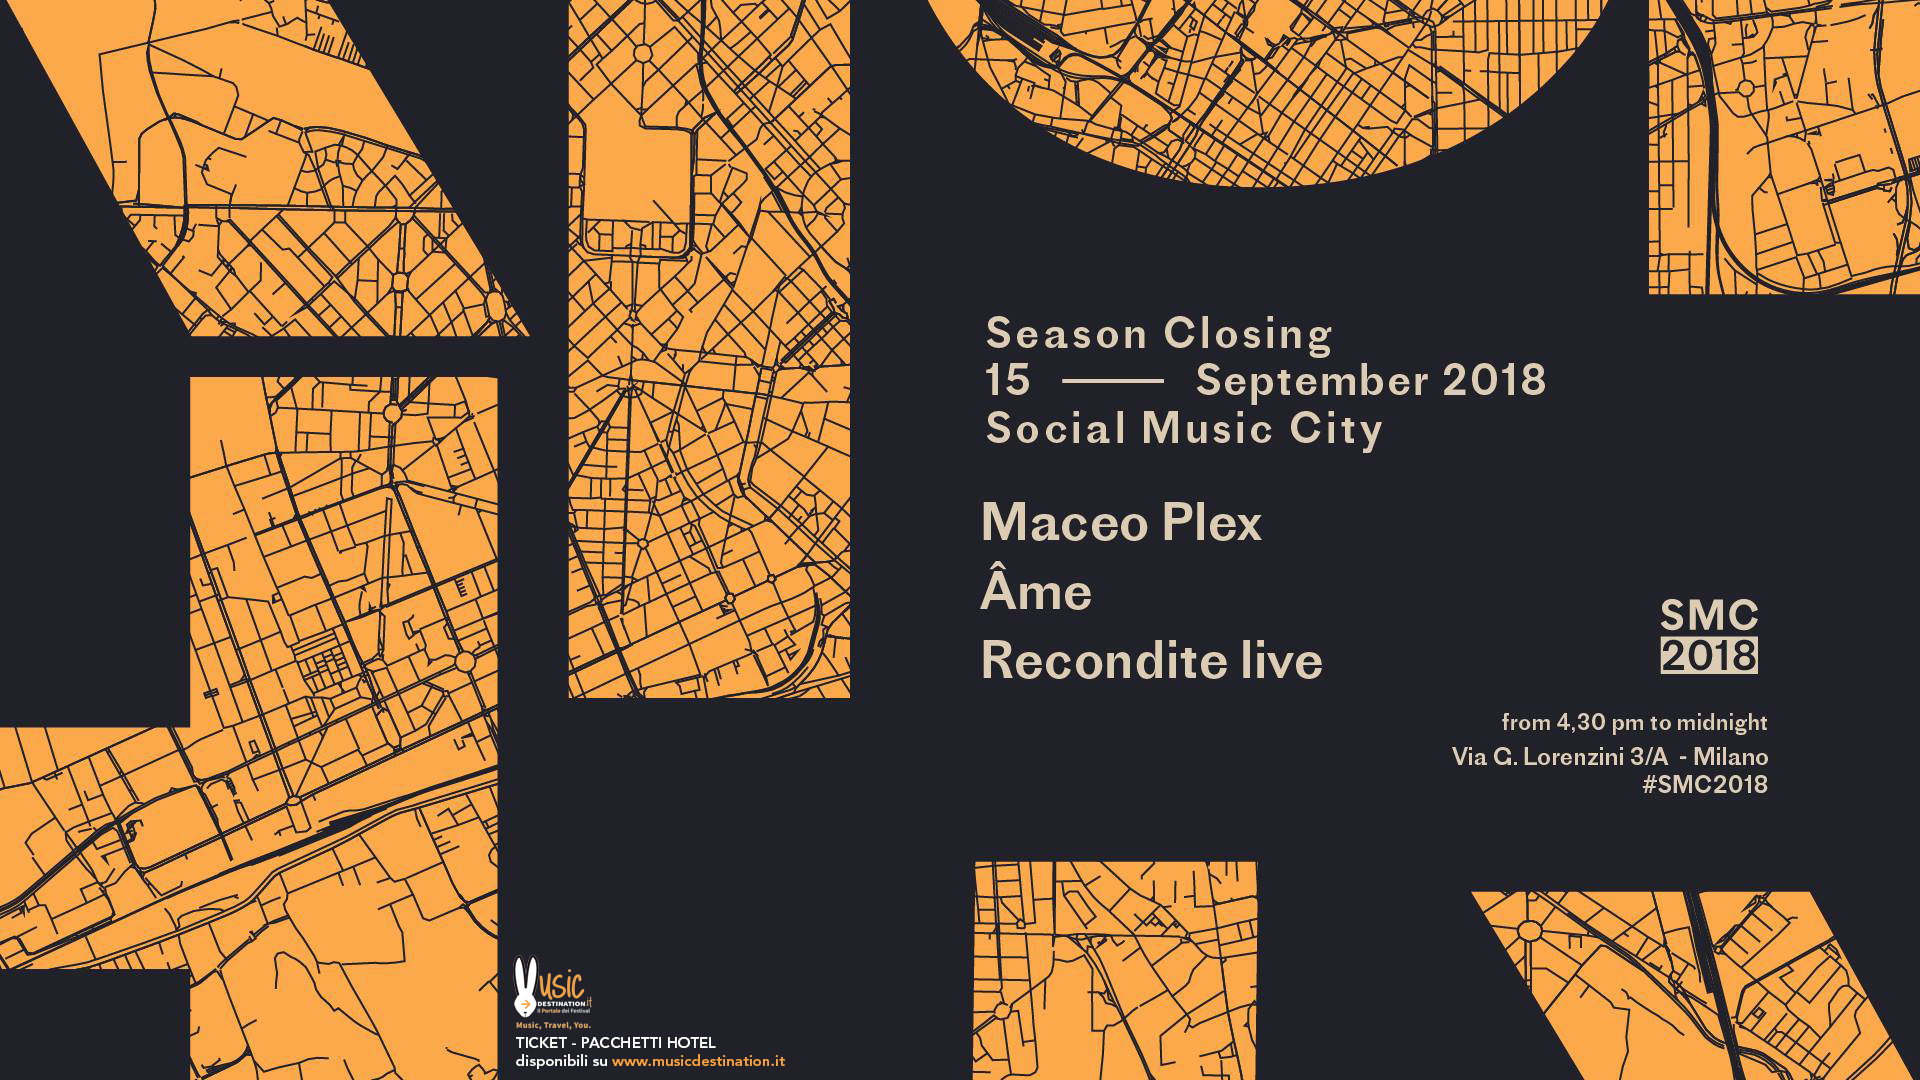 maceo plex social music city 15 settembre 2018